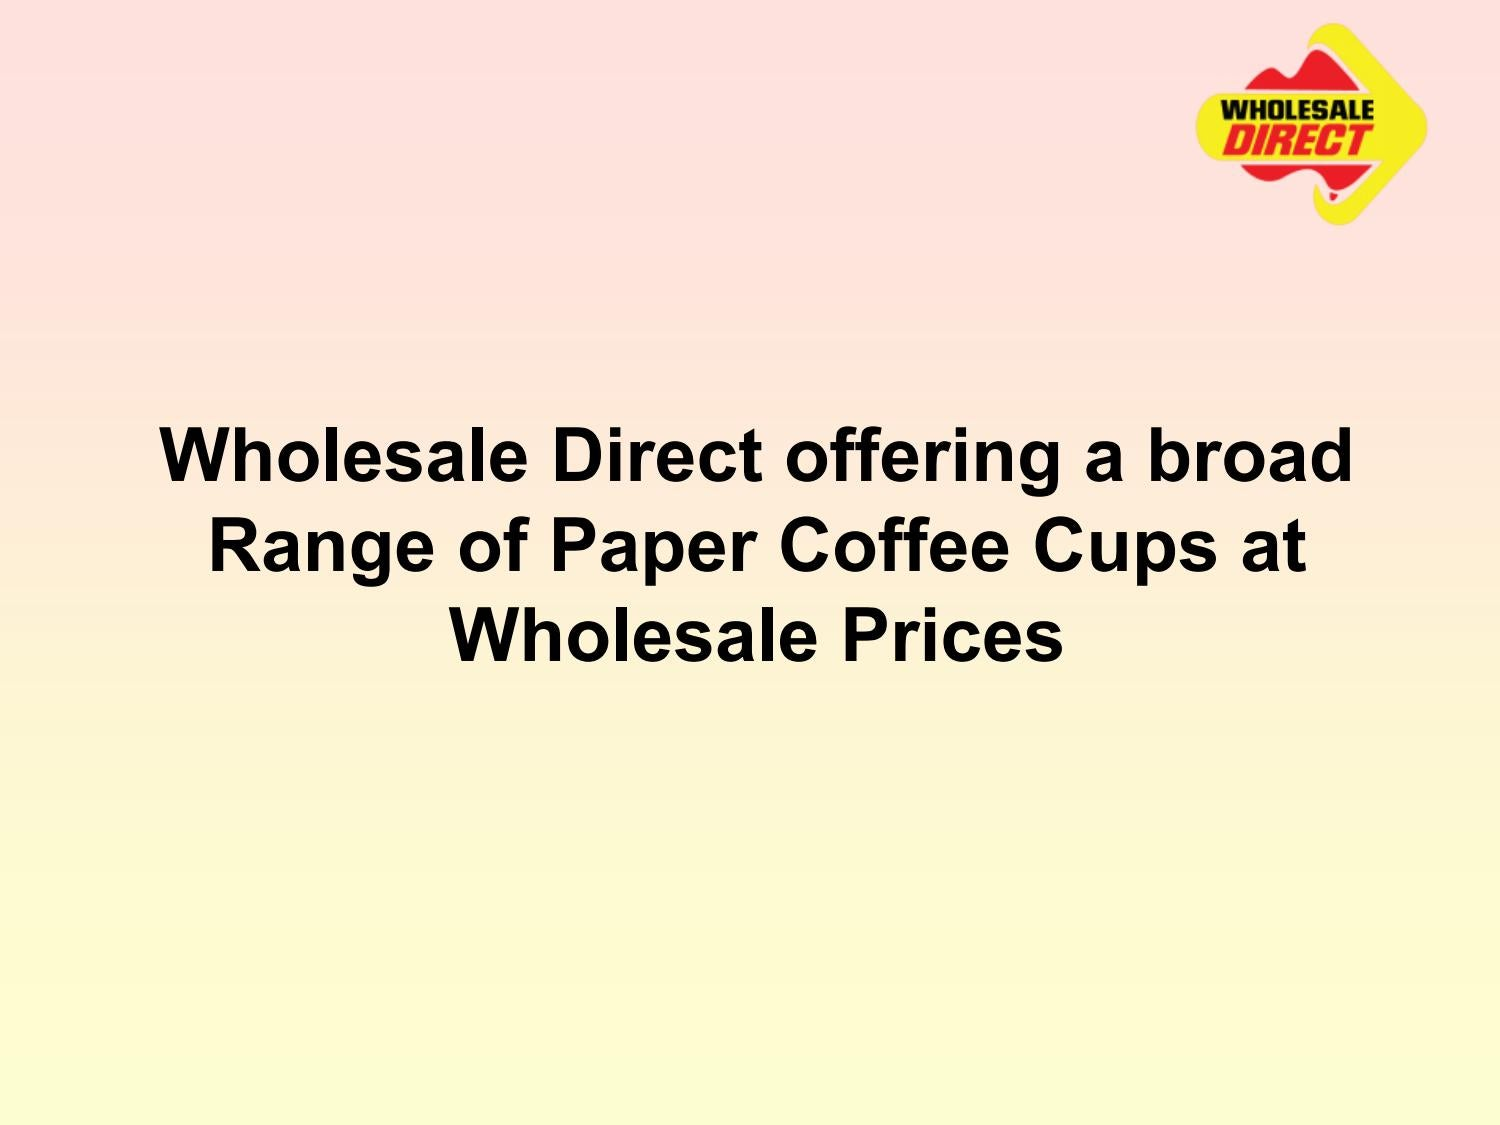 Wholesale Direct offering a broad Range of Paper Coffee Cups